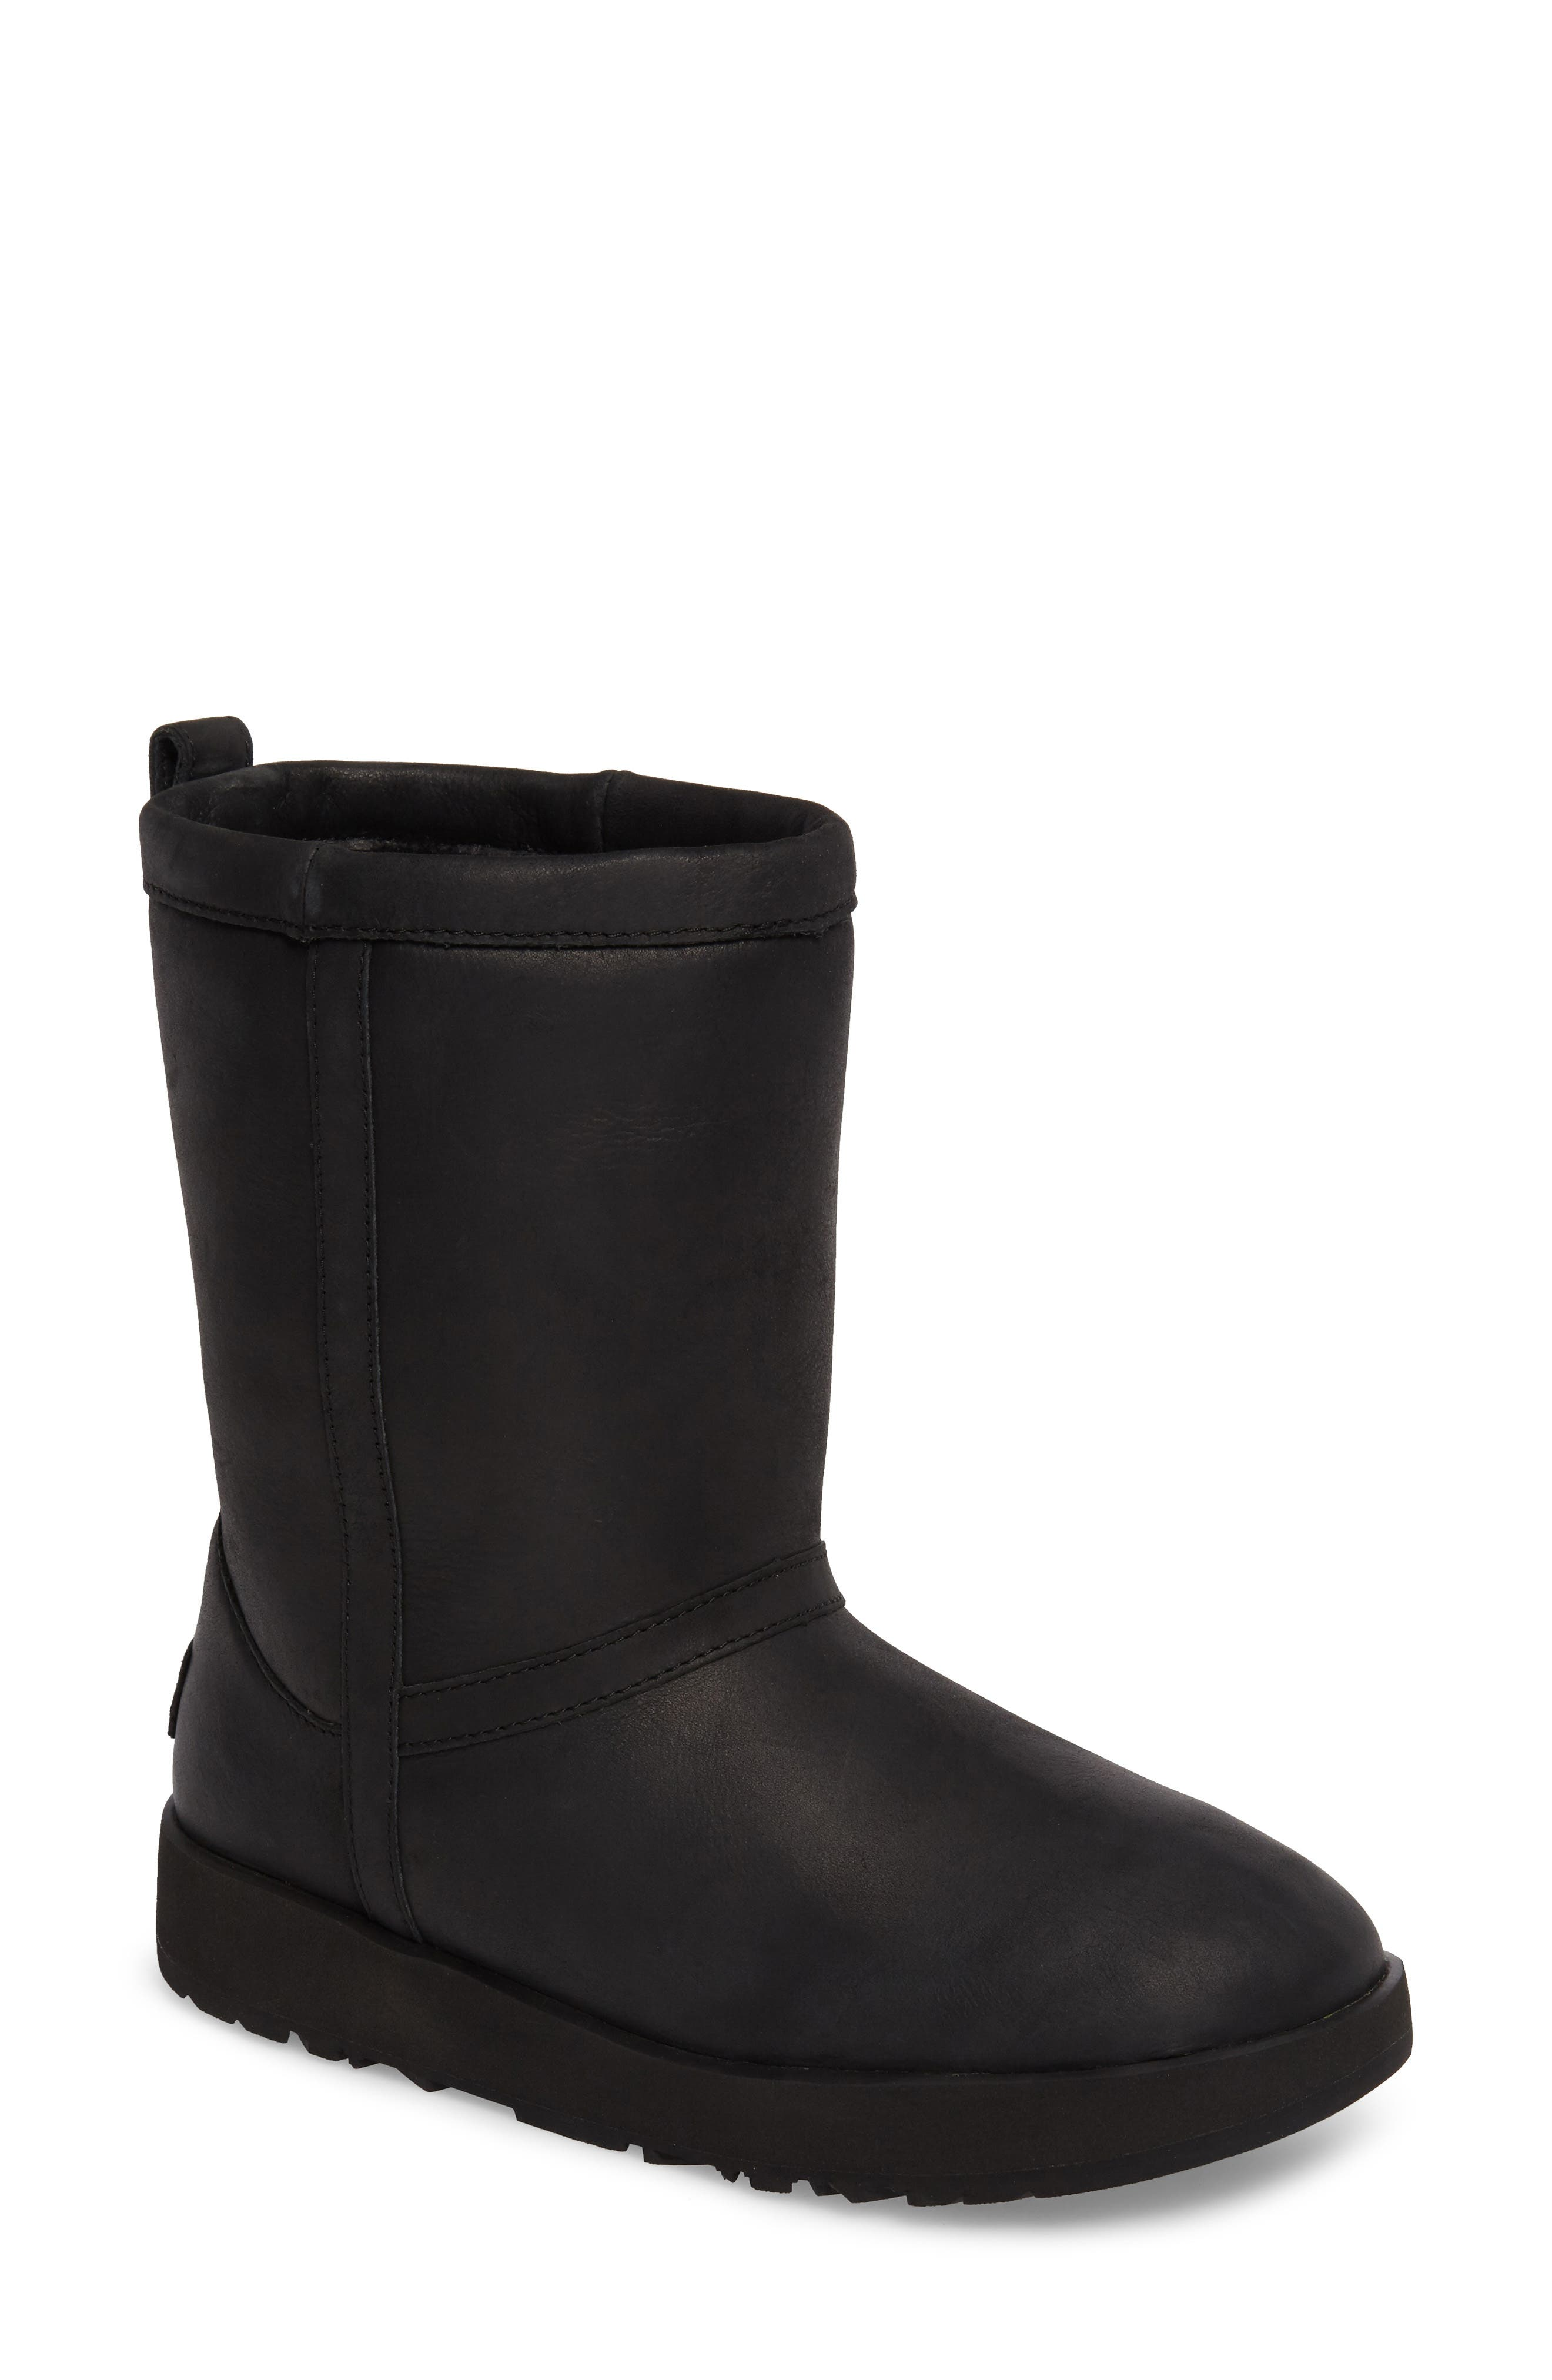 UGG<SUP>®</SUP> Classic Genuine Shearling Lined Short Waterproof Boot, Main, color, BLACK LEATHER